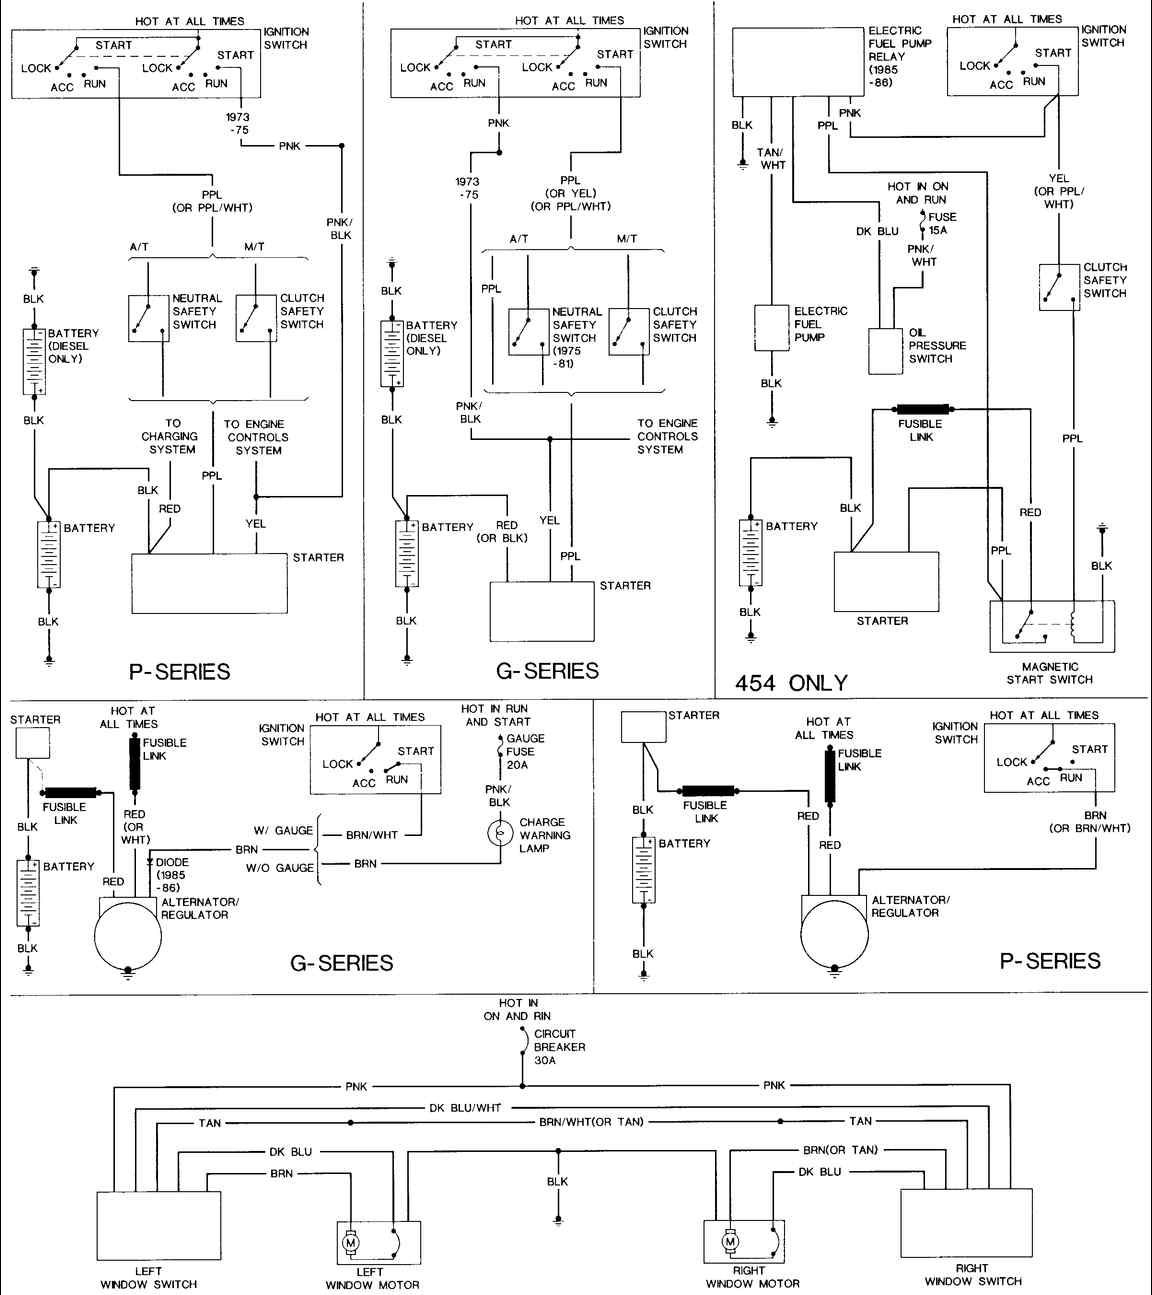 chevrolet van wiring diagram about wiring diagram 1990 chevy 3500 lights wiring diagram 1990 chevy [ 1152 x 1295 Pixel ]